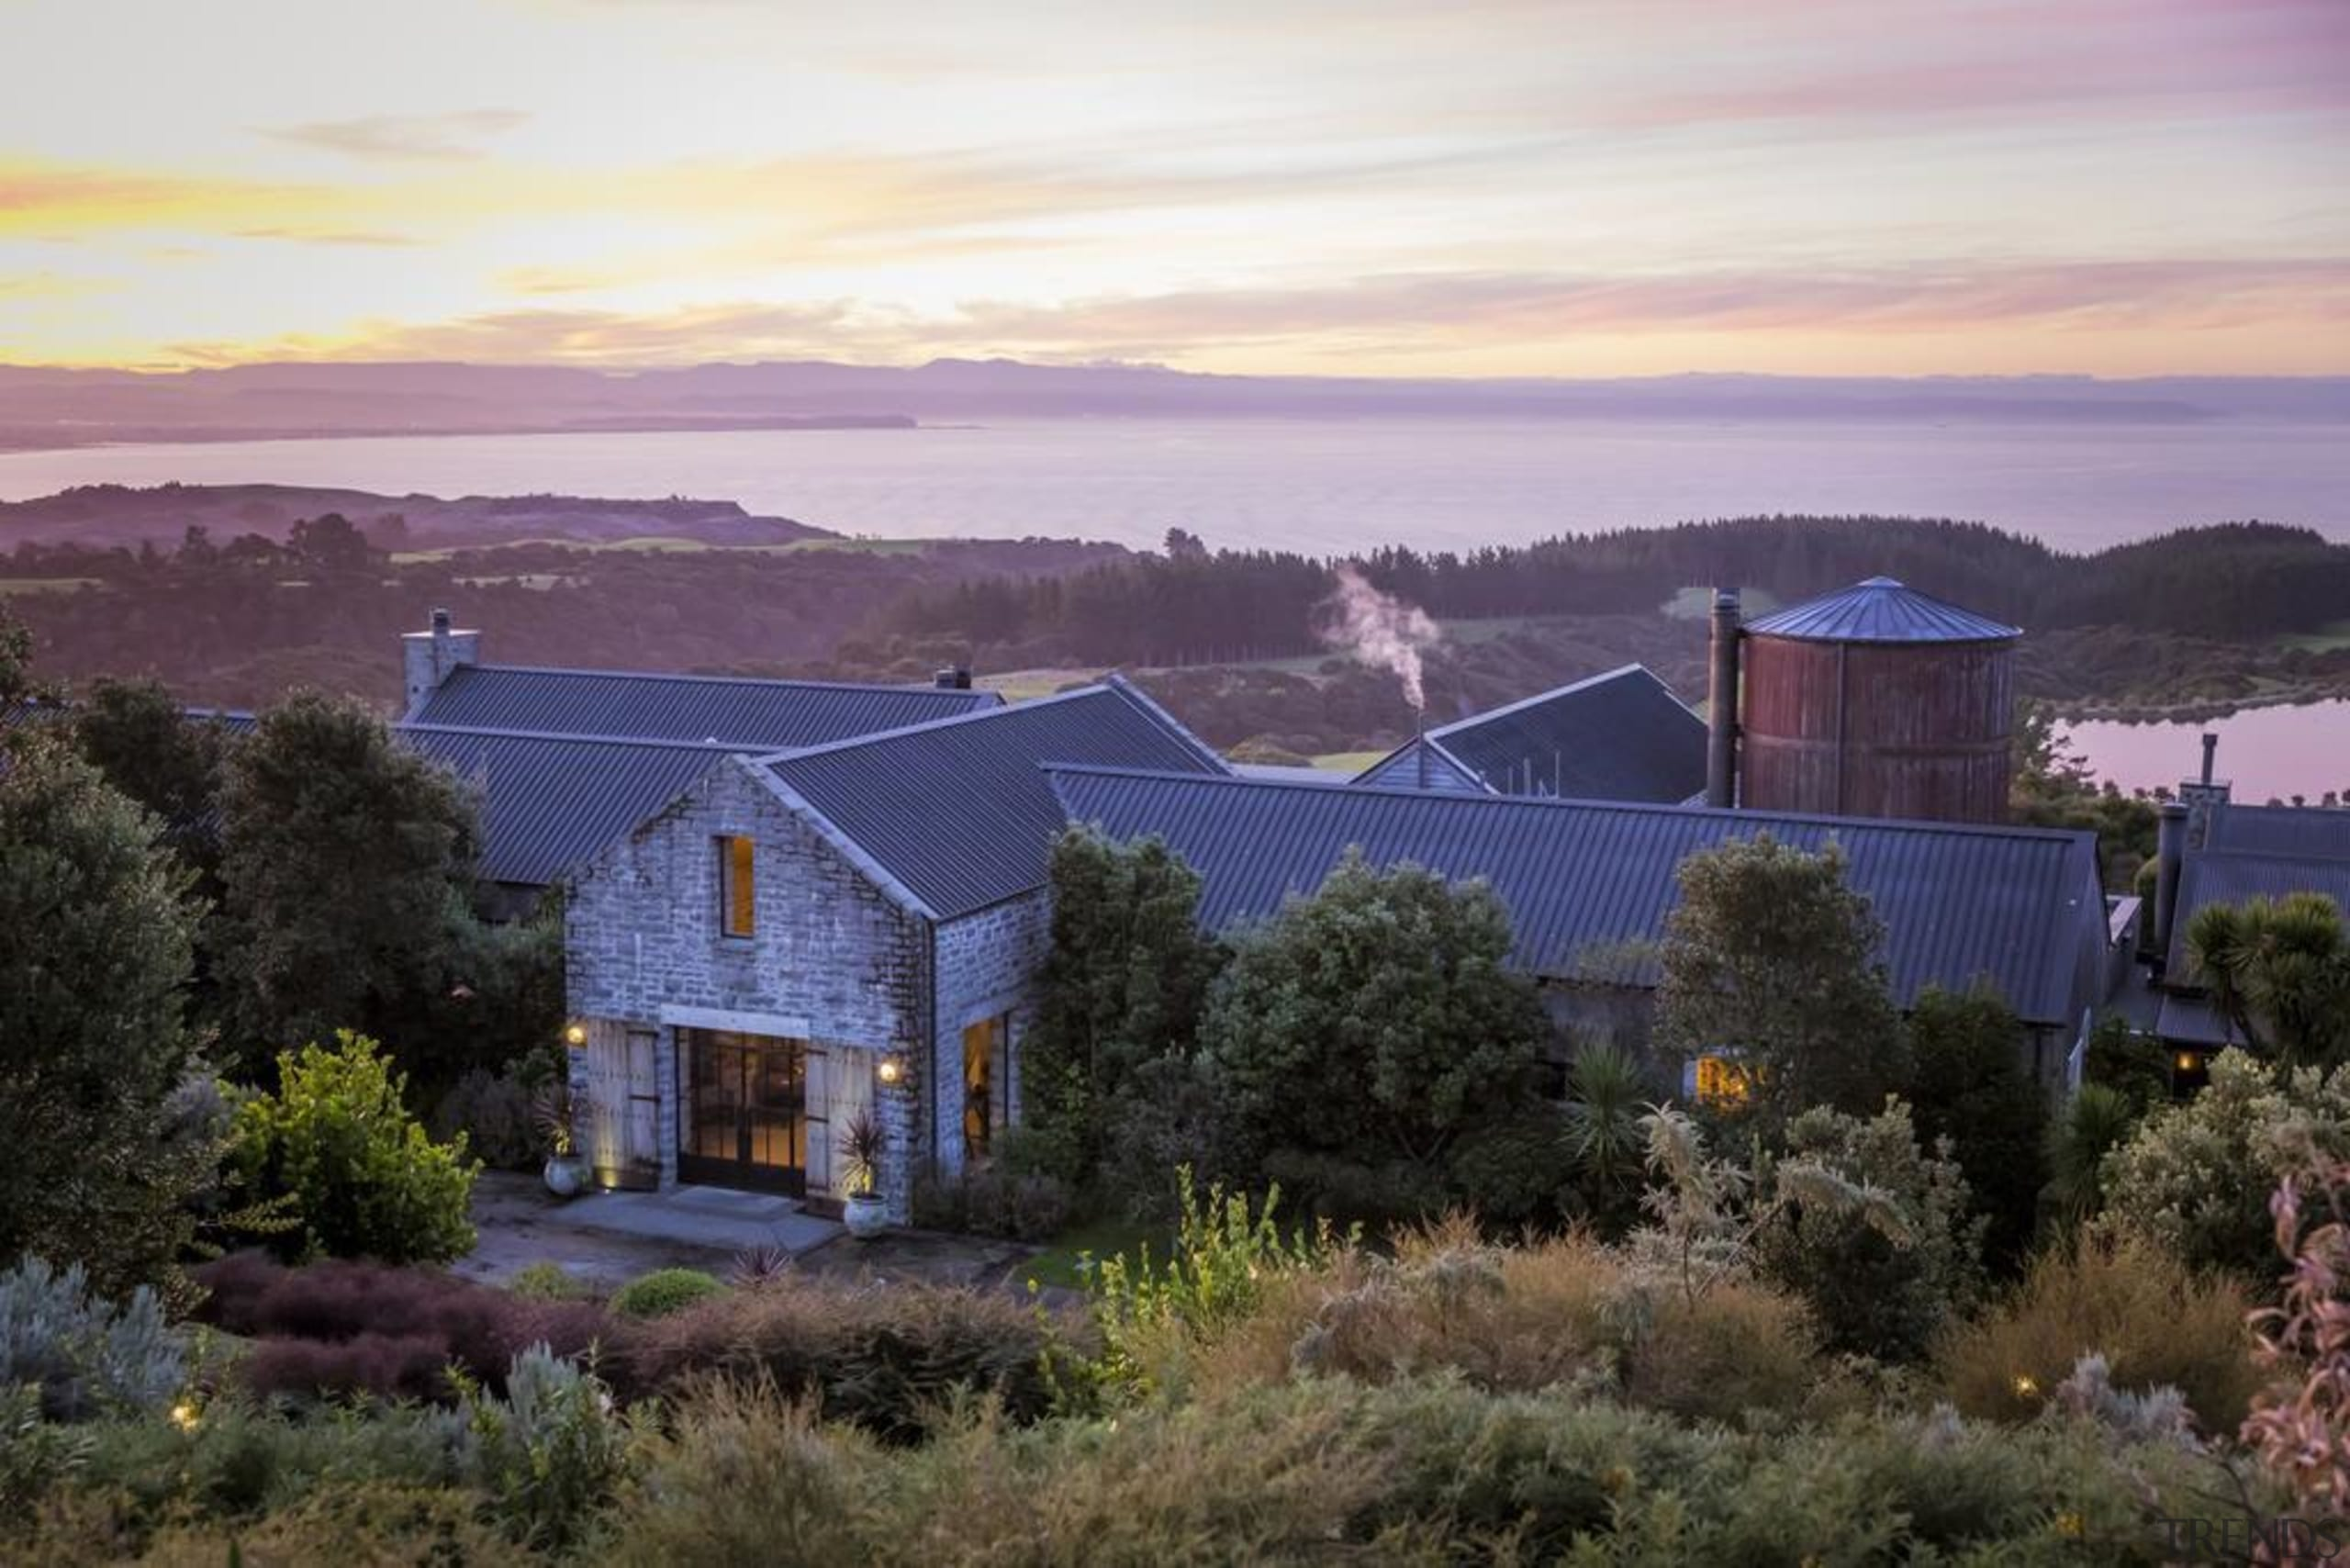 Cape Kidnappers, Hawke's Bay, New Zealand - building building, cloud, estate, evening, farm, farmhouse, fell, highland, hill, home, house, land lot, landscape, morning, property, real estate, residential area, roof, rural area, sky, suburb, sunlight, tree, black